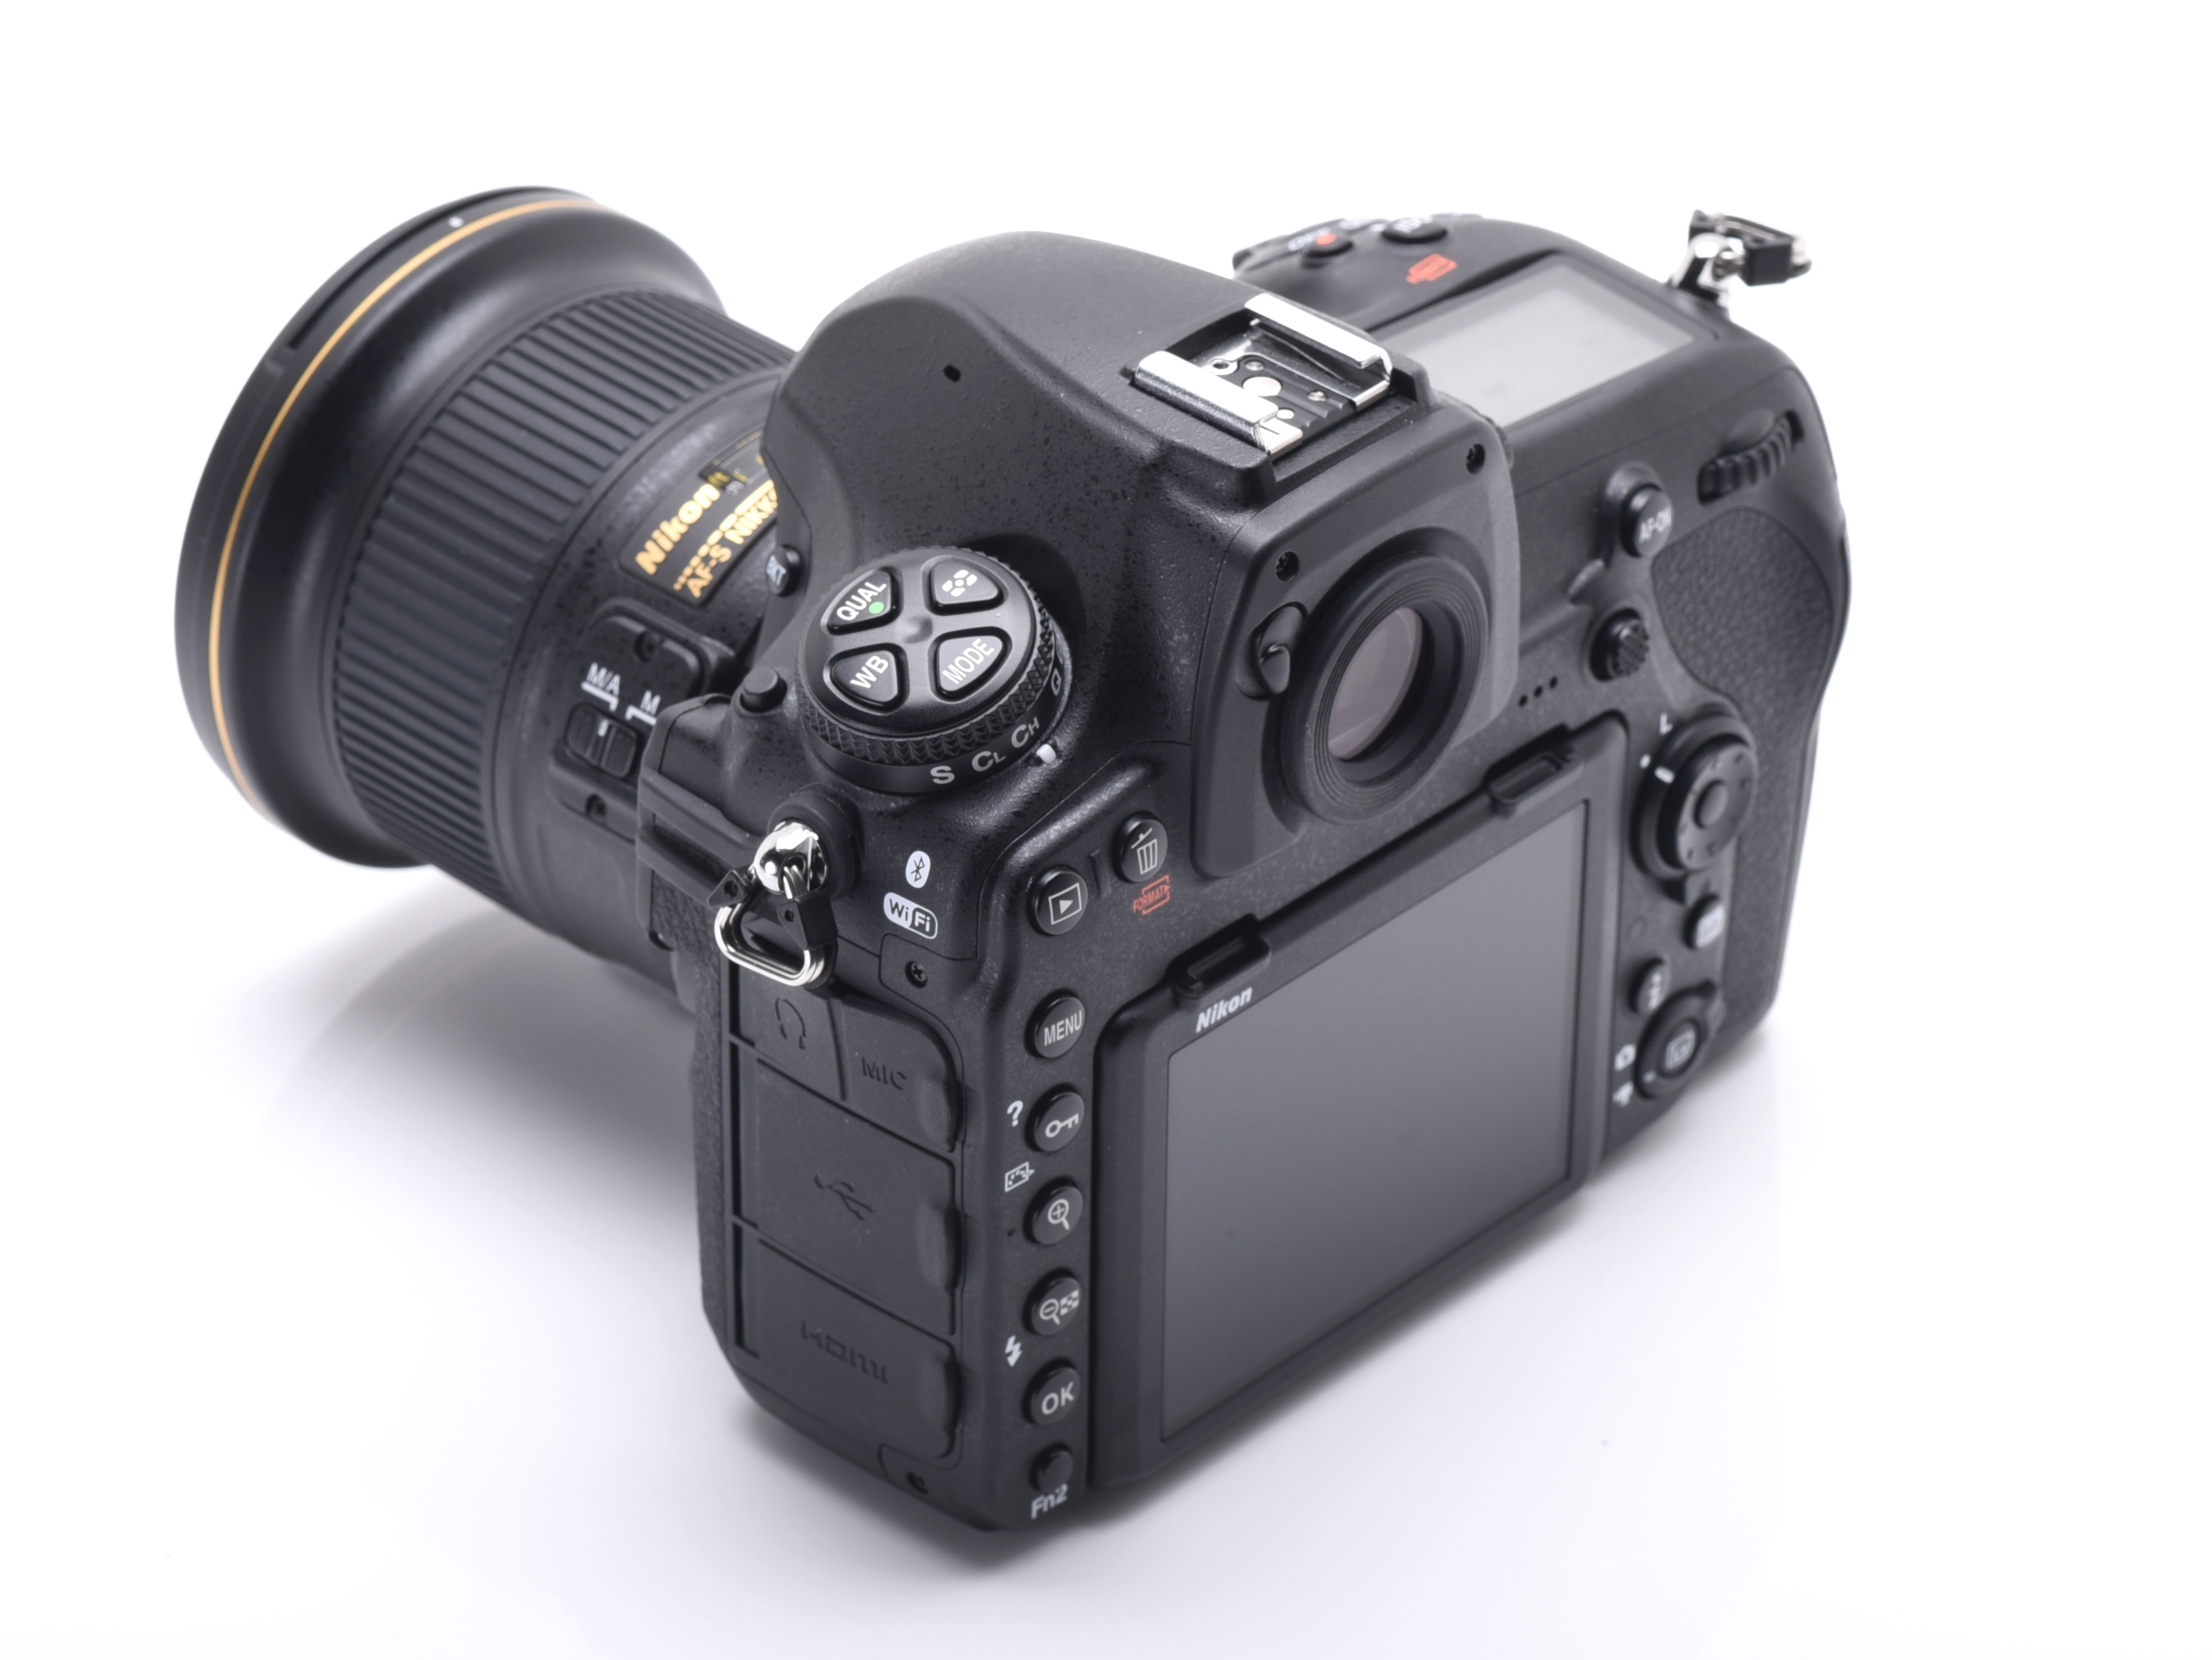 Nikon D850 Sensor Confirmed As Sony Made Digital Photography Review 85 Toyota Radio Wiring Nikons Is One Of The Most Capable Dslrs On Market Boasting Class Leading Image Quality From Its 46mp Full Frame